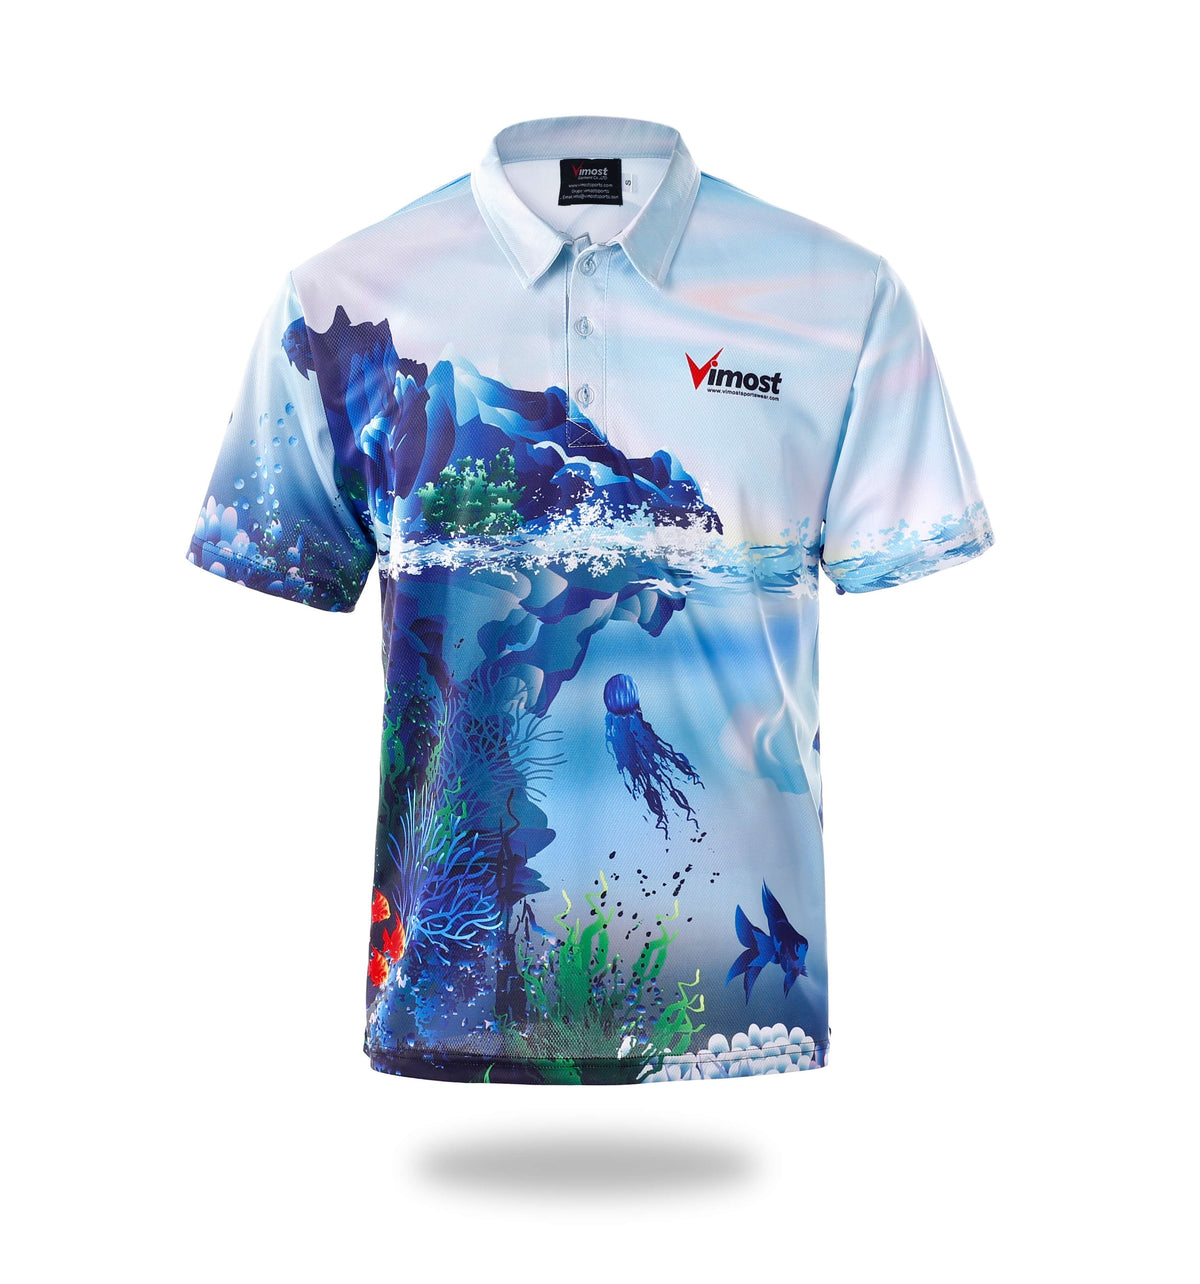 Mens Short Sleeve Design Fishing Shirts-Vimost Sports